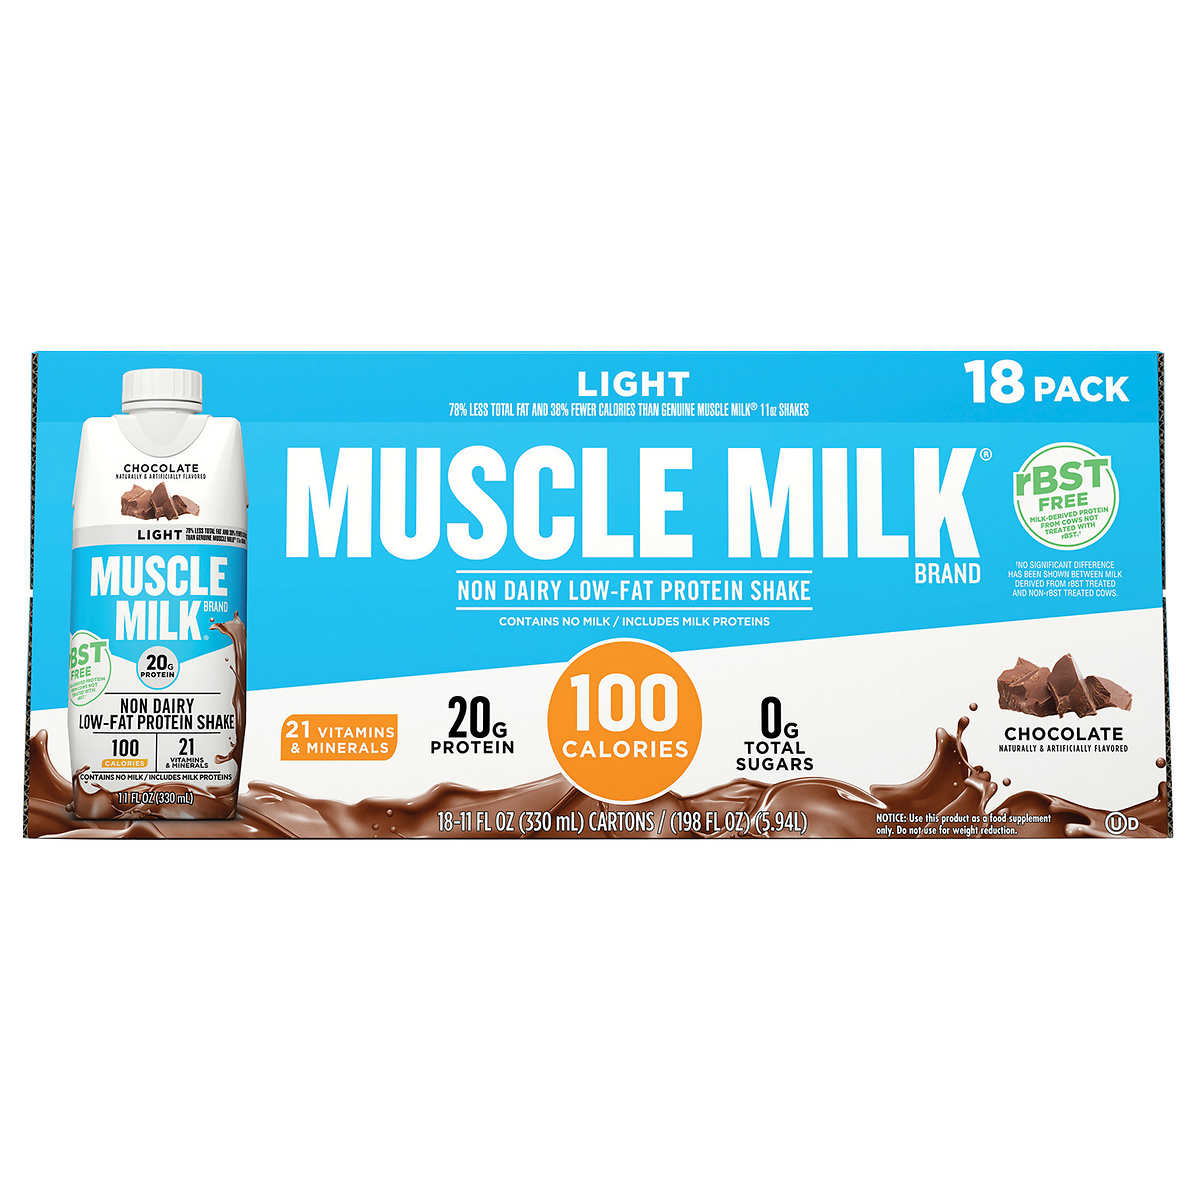 Muscle Milk Light rBST Free Chocolate Protein Shakes 18-pack, 11 fl oz